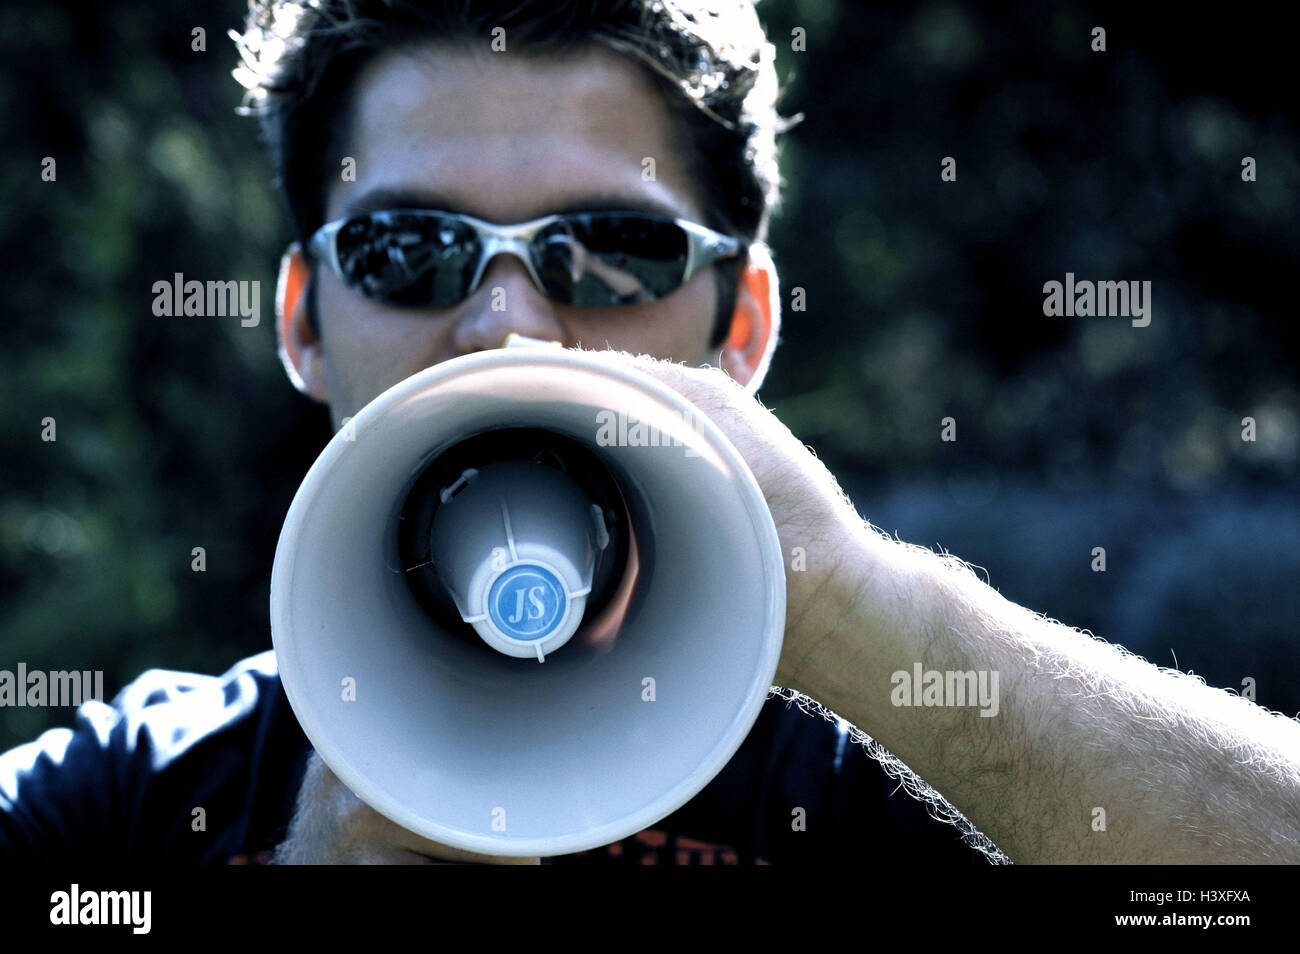 Man, sun glass, megaphone,  Announcement, announcement, information,  loudly, portrait  24 years, 20-30 years, communication, - Stock Image